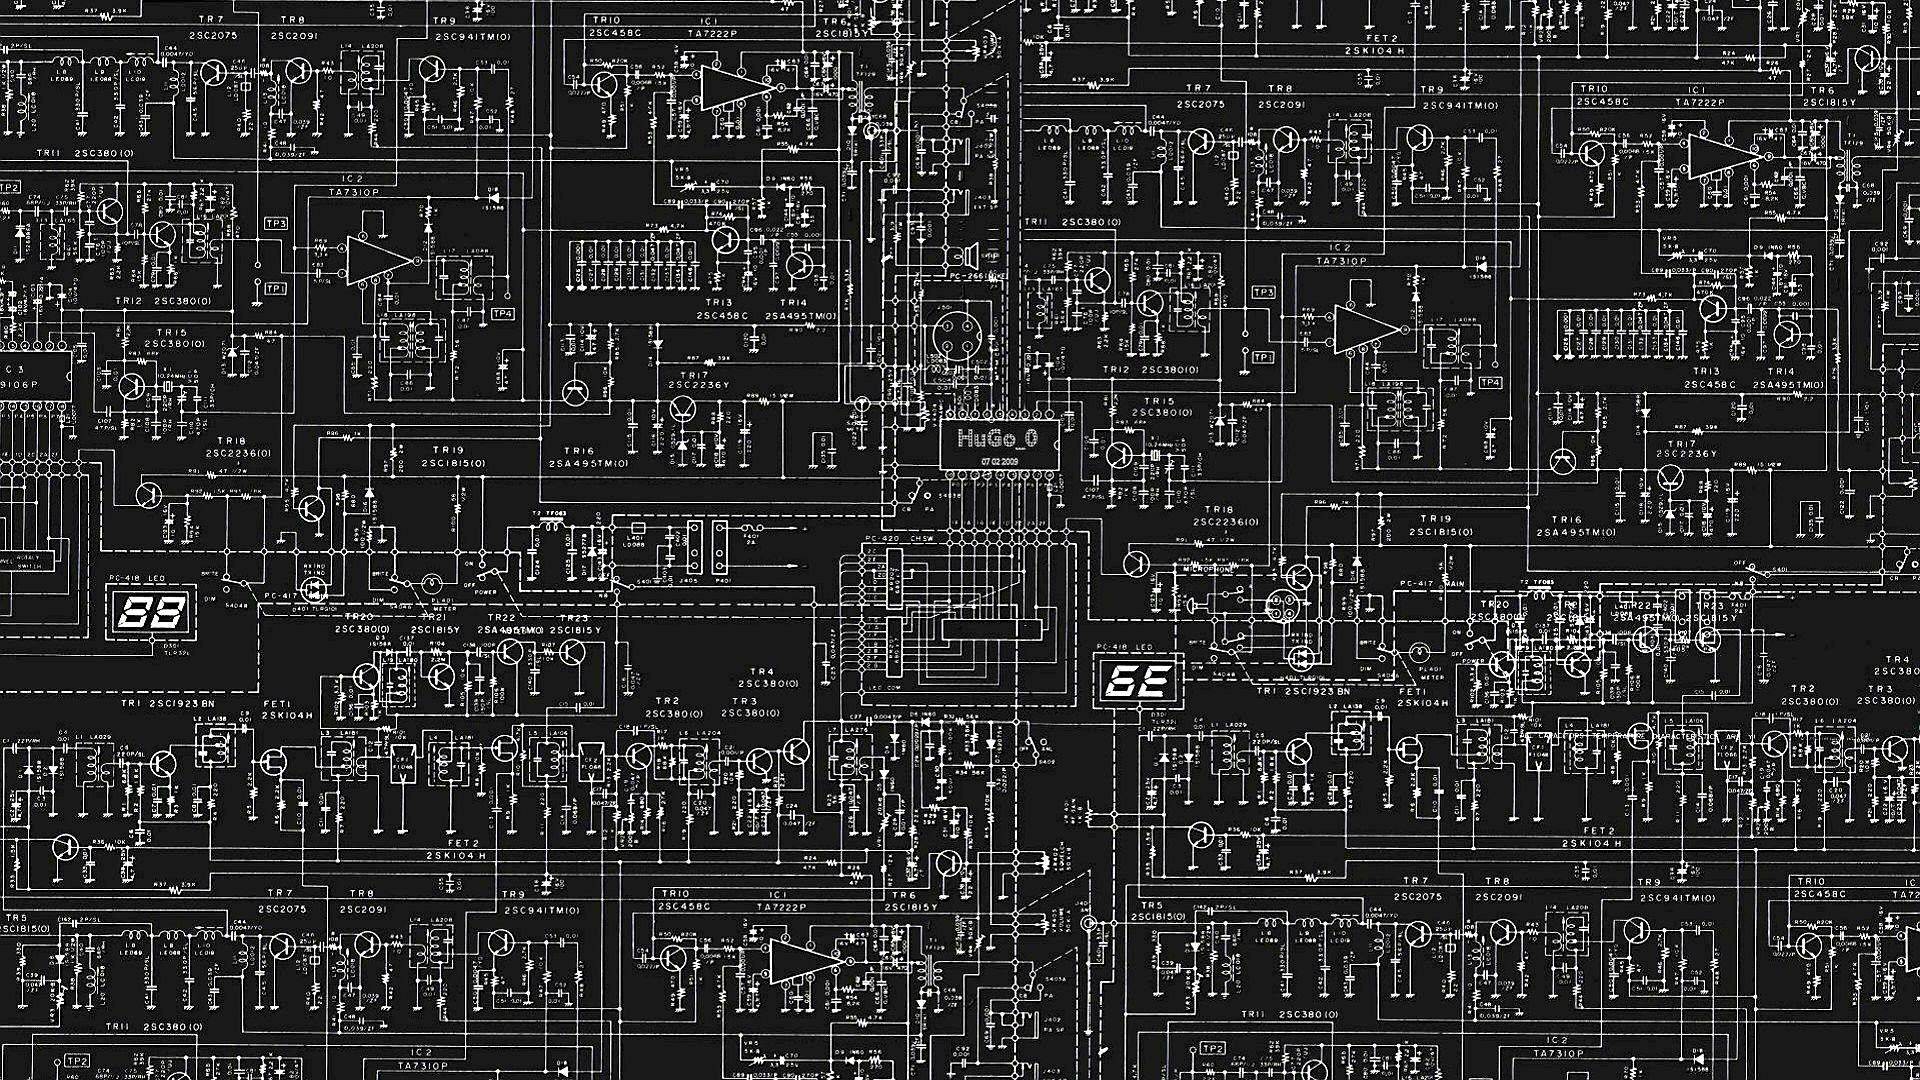 Engineering Wallpaper 4k For Pc Ideas Electronics Wallpaper Computer Engineering Science Images